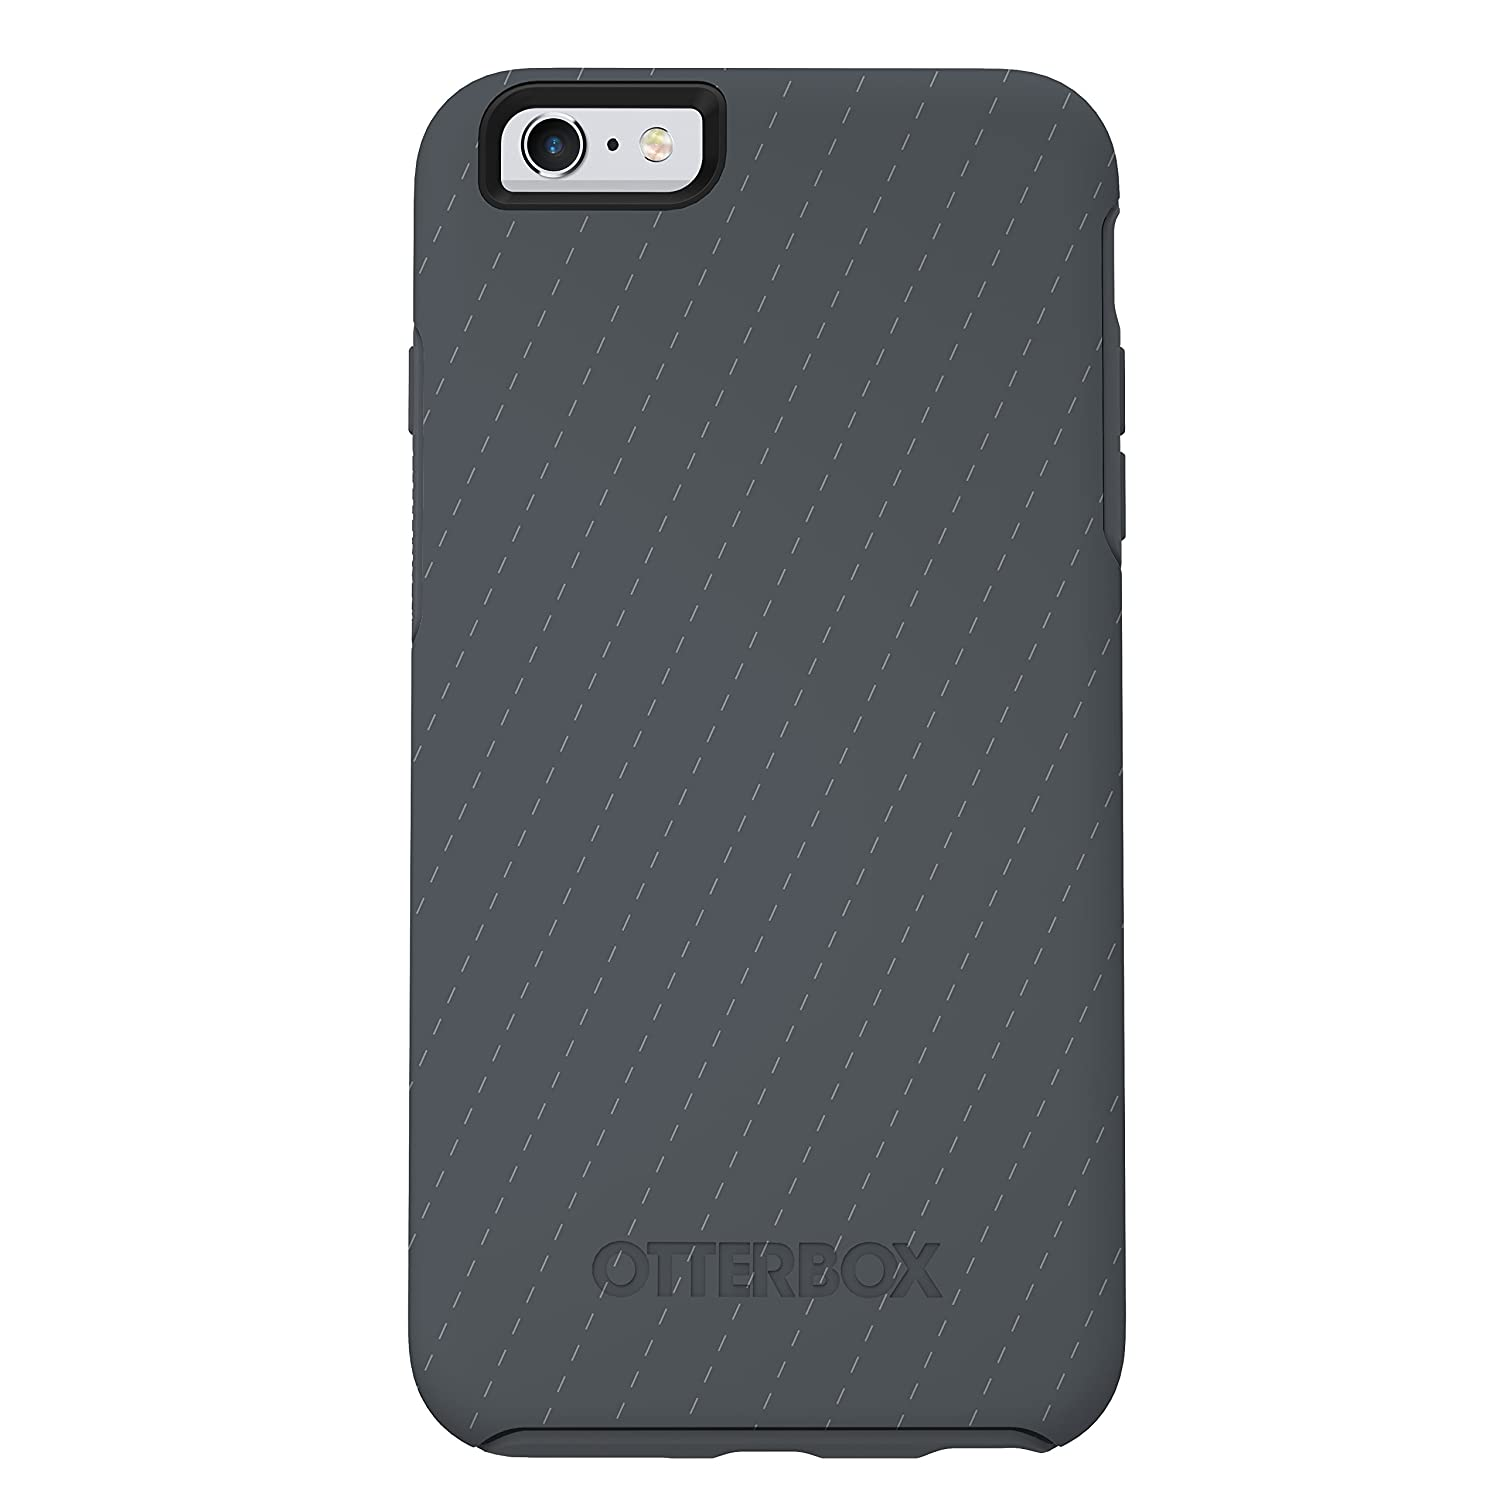 """NEW OtterBox SYMMETRY SERIES Case for iPhone 6/6s (4.7"""" Version) - Retail Packaging - PINSTRIPES (SLATE GREY/SLATE GREY/PINSTRIPE)"""